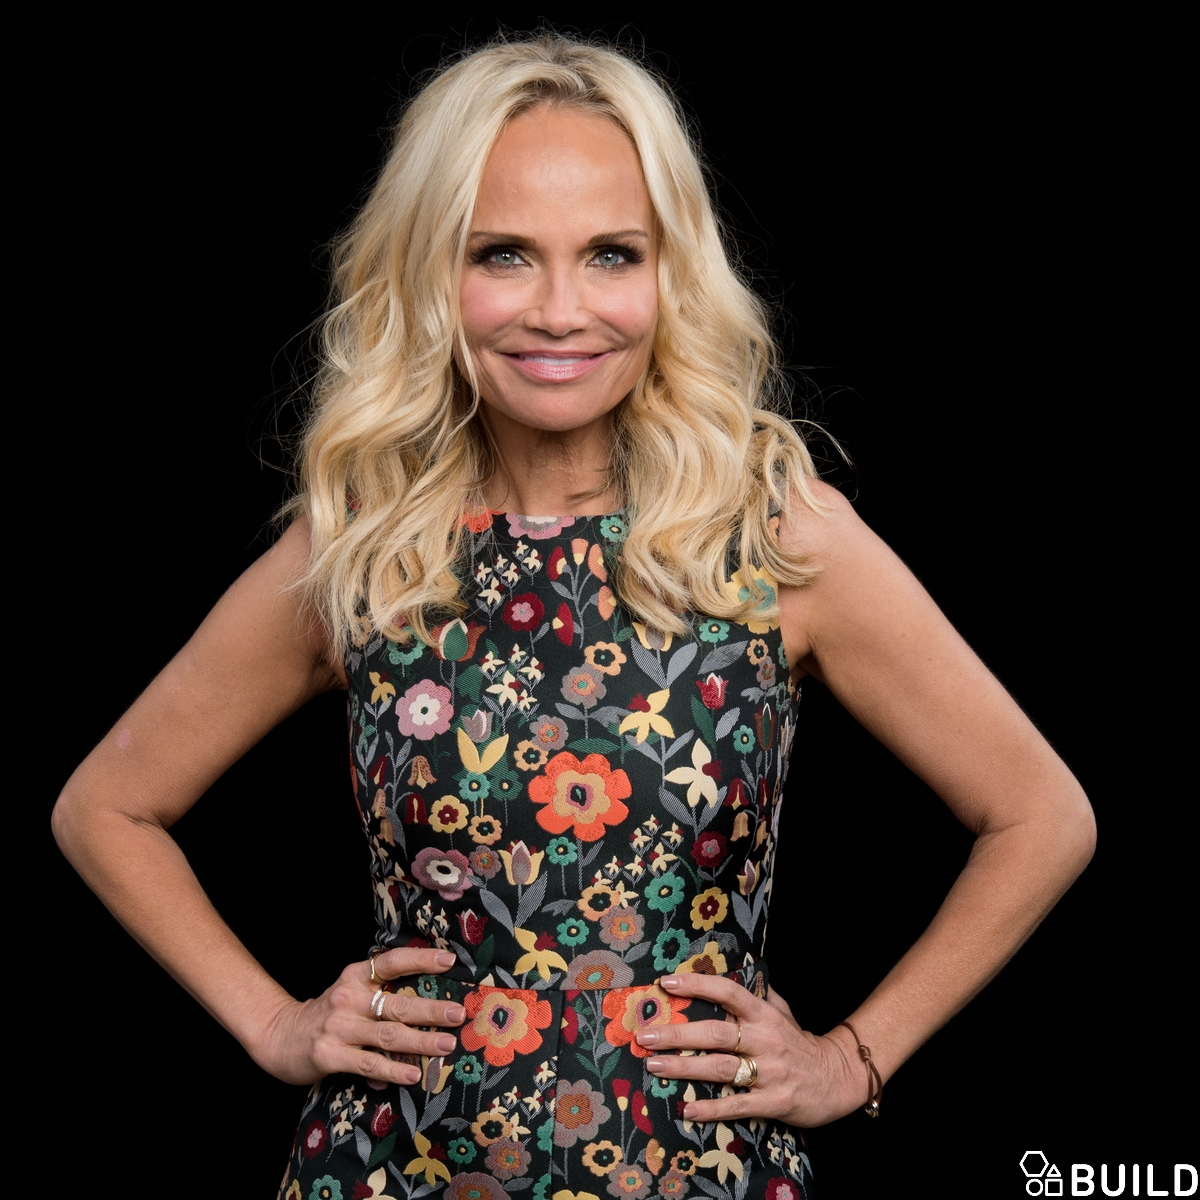 Kristin Chenoweth visits AOL Hq for Build on September 26, 2016 in New York. Photos by Noam Galai